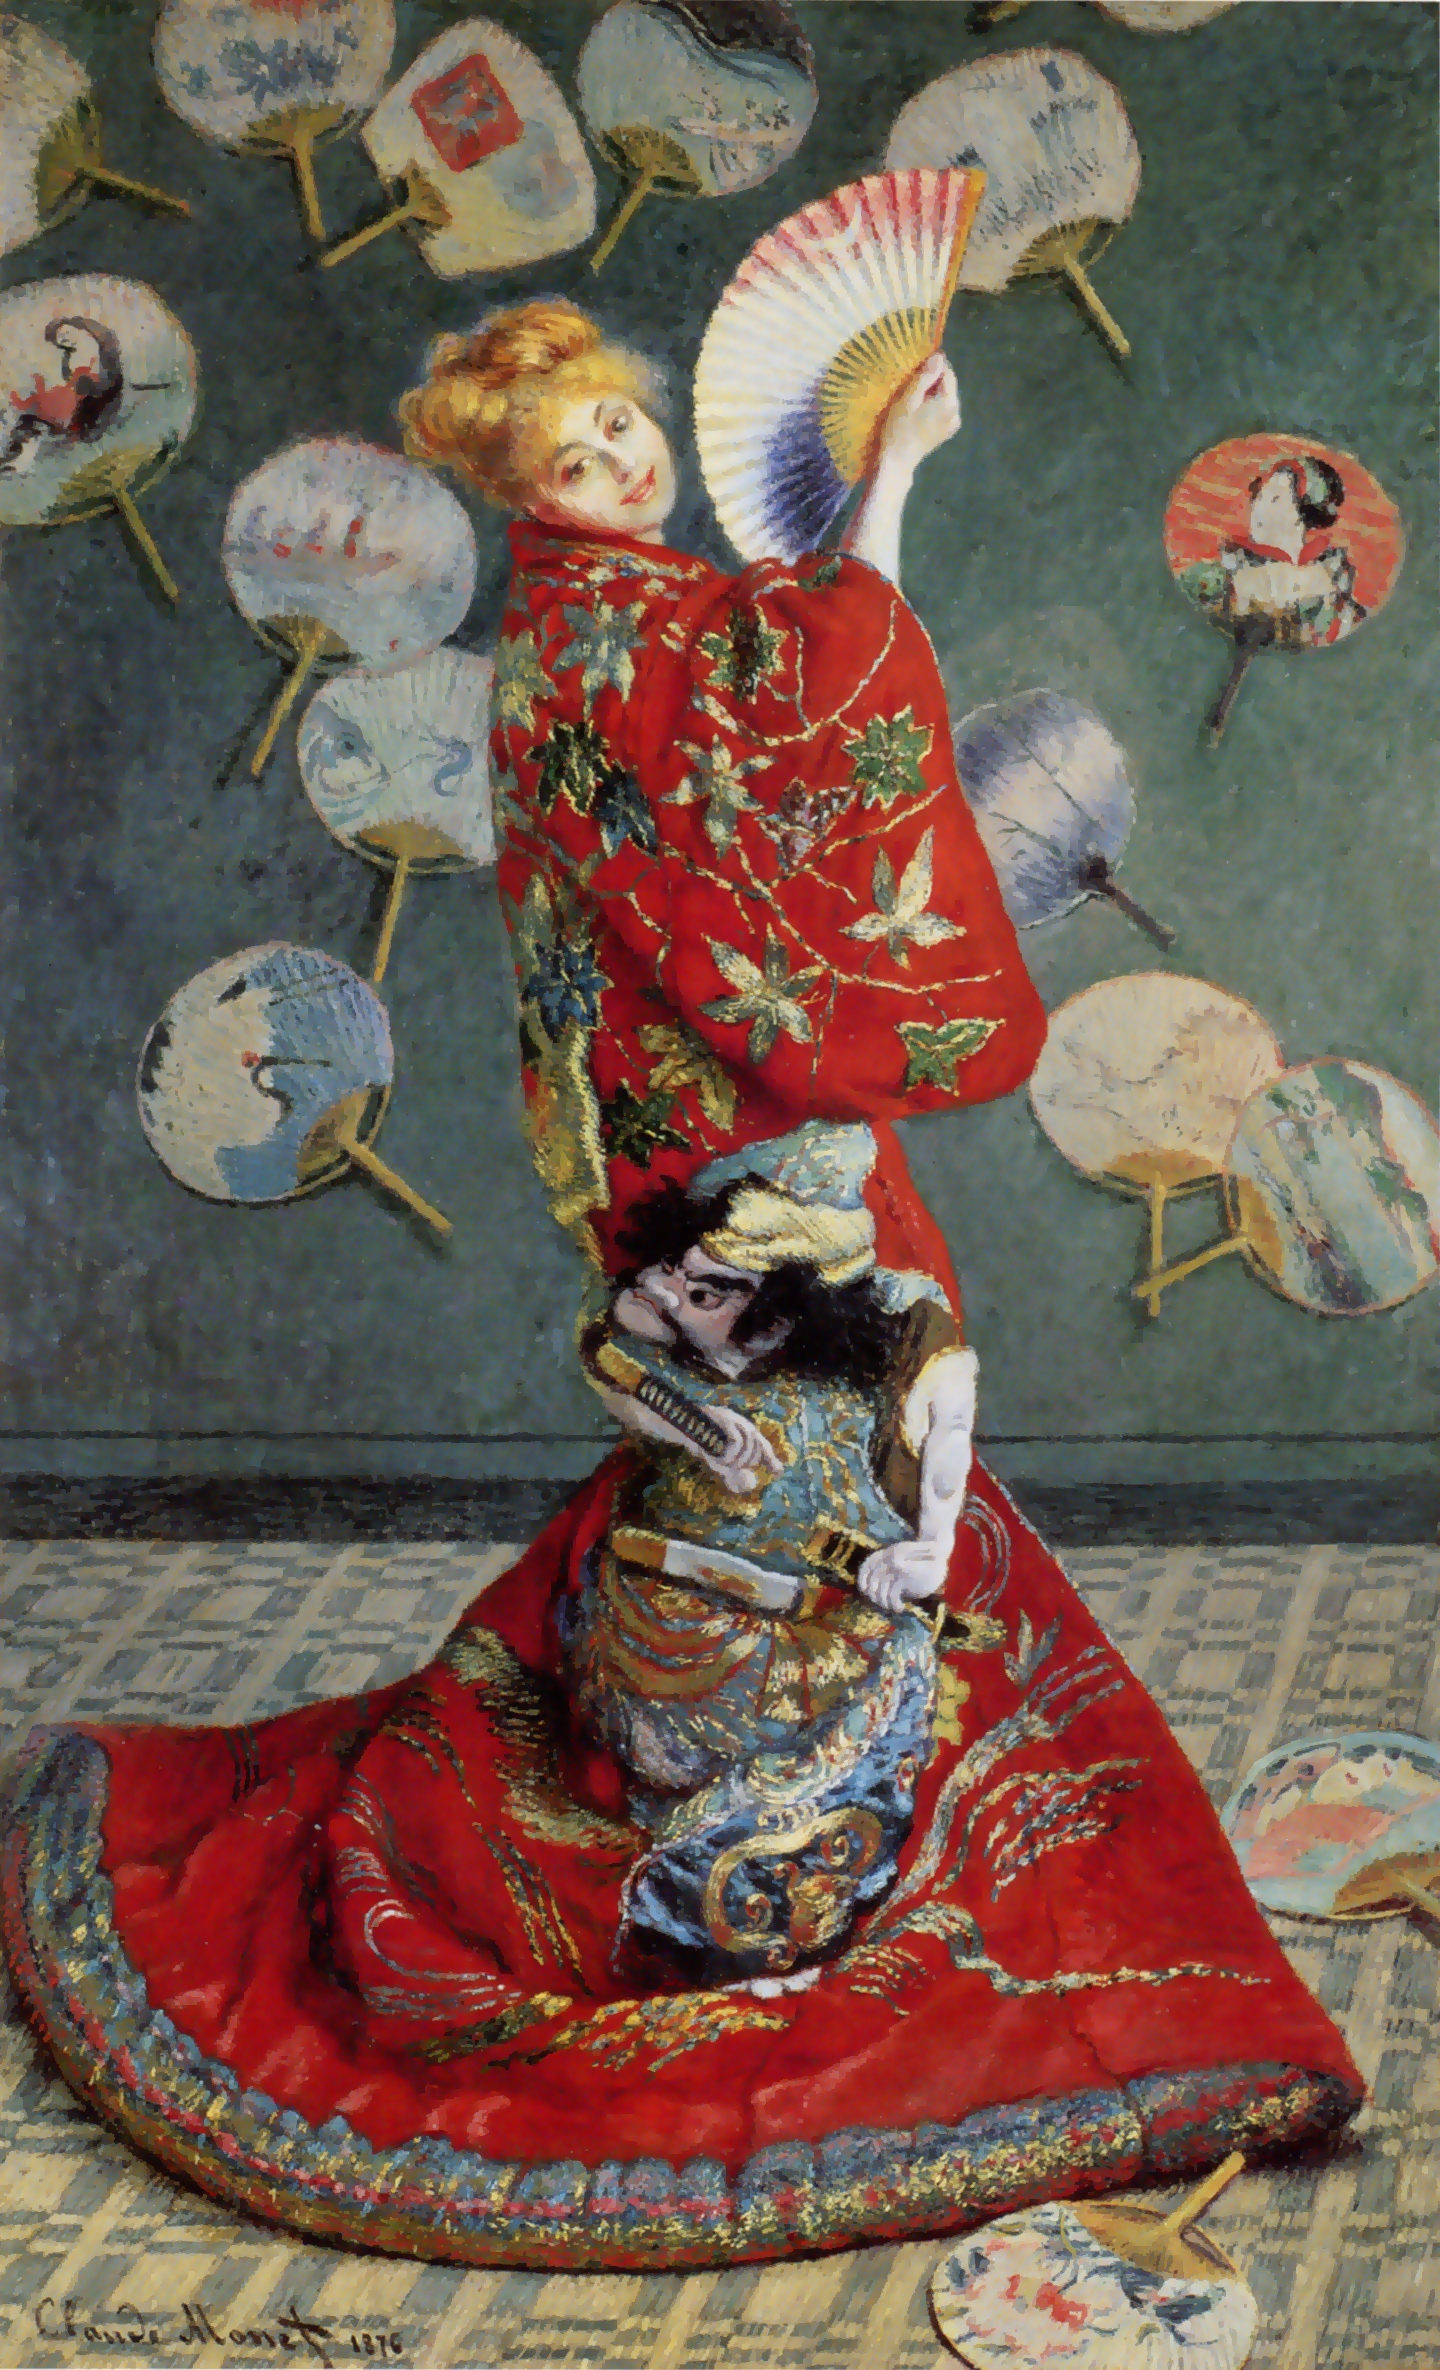 La Japonaise by Claude Monet - image from Wikipedia